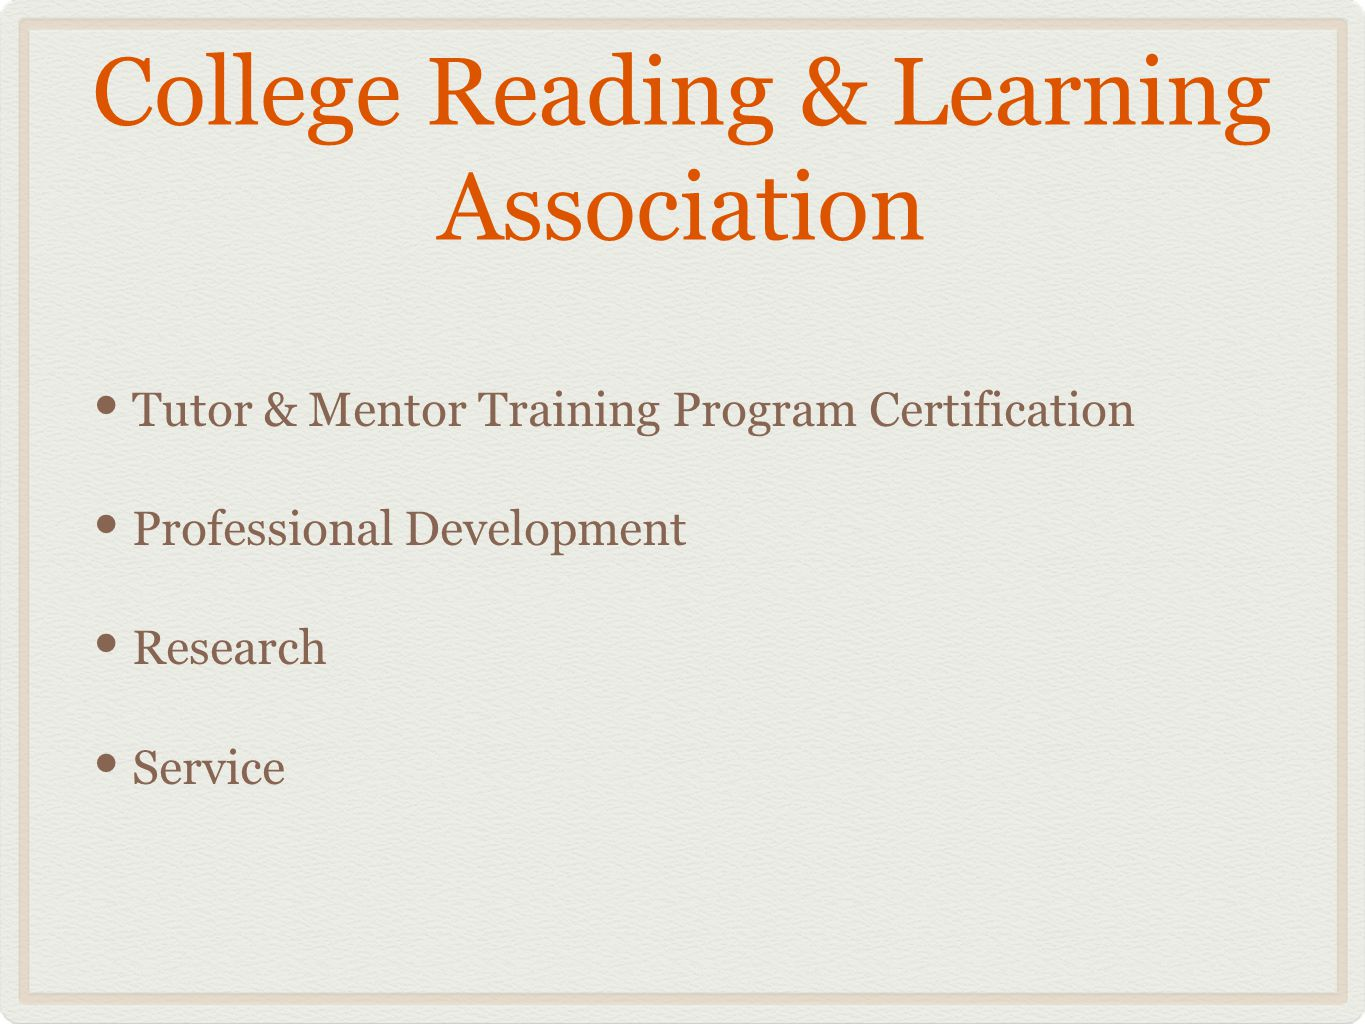 International mentor training program certification page keller 3 college reading learning association tutor mentor training program certification professional development research service 1betcityfo Gallery